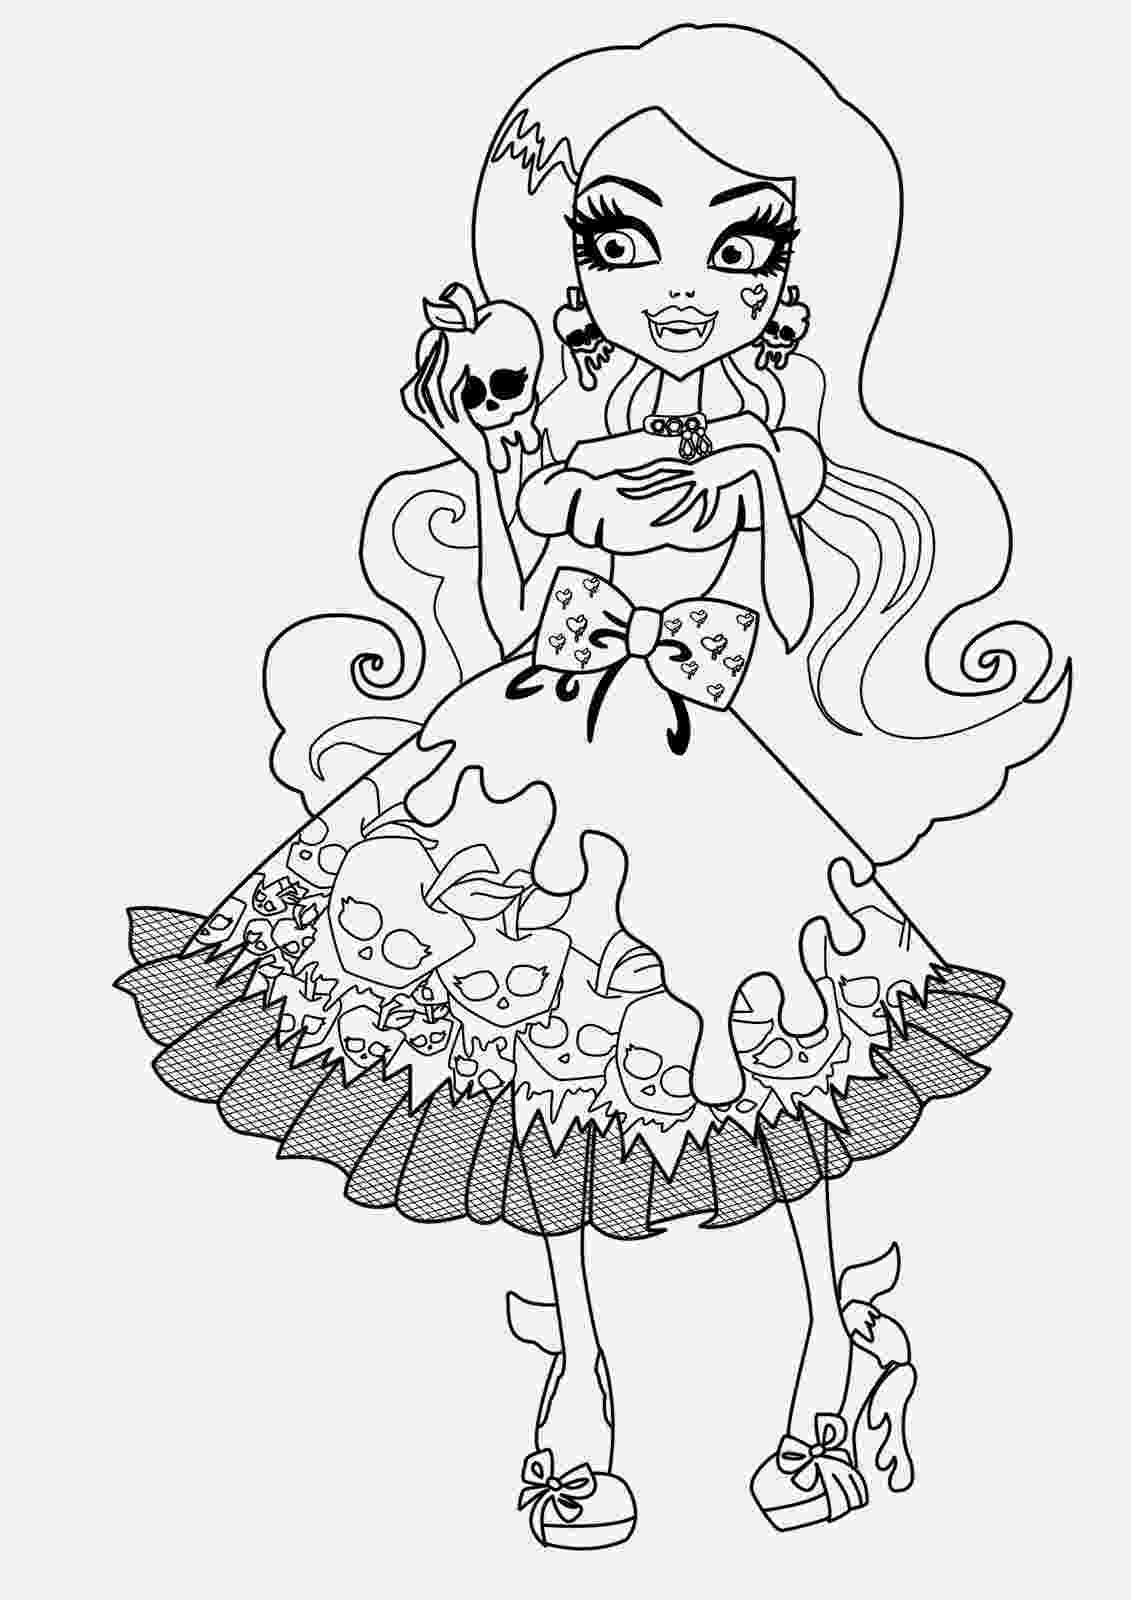 monster high coloring book games coloring pages monster high coloring pages free and printable monster high book games coloring